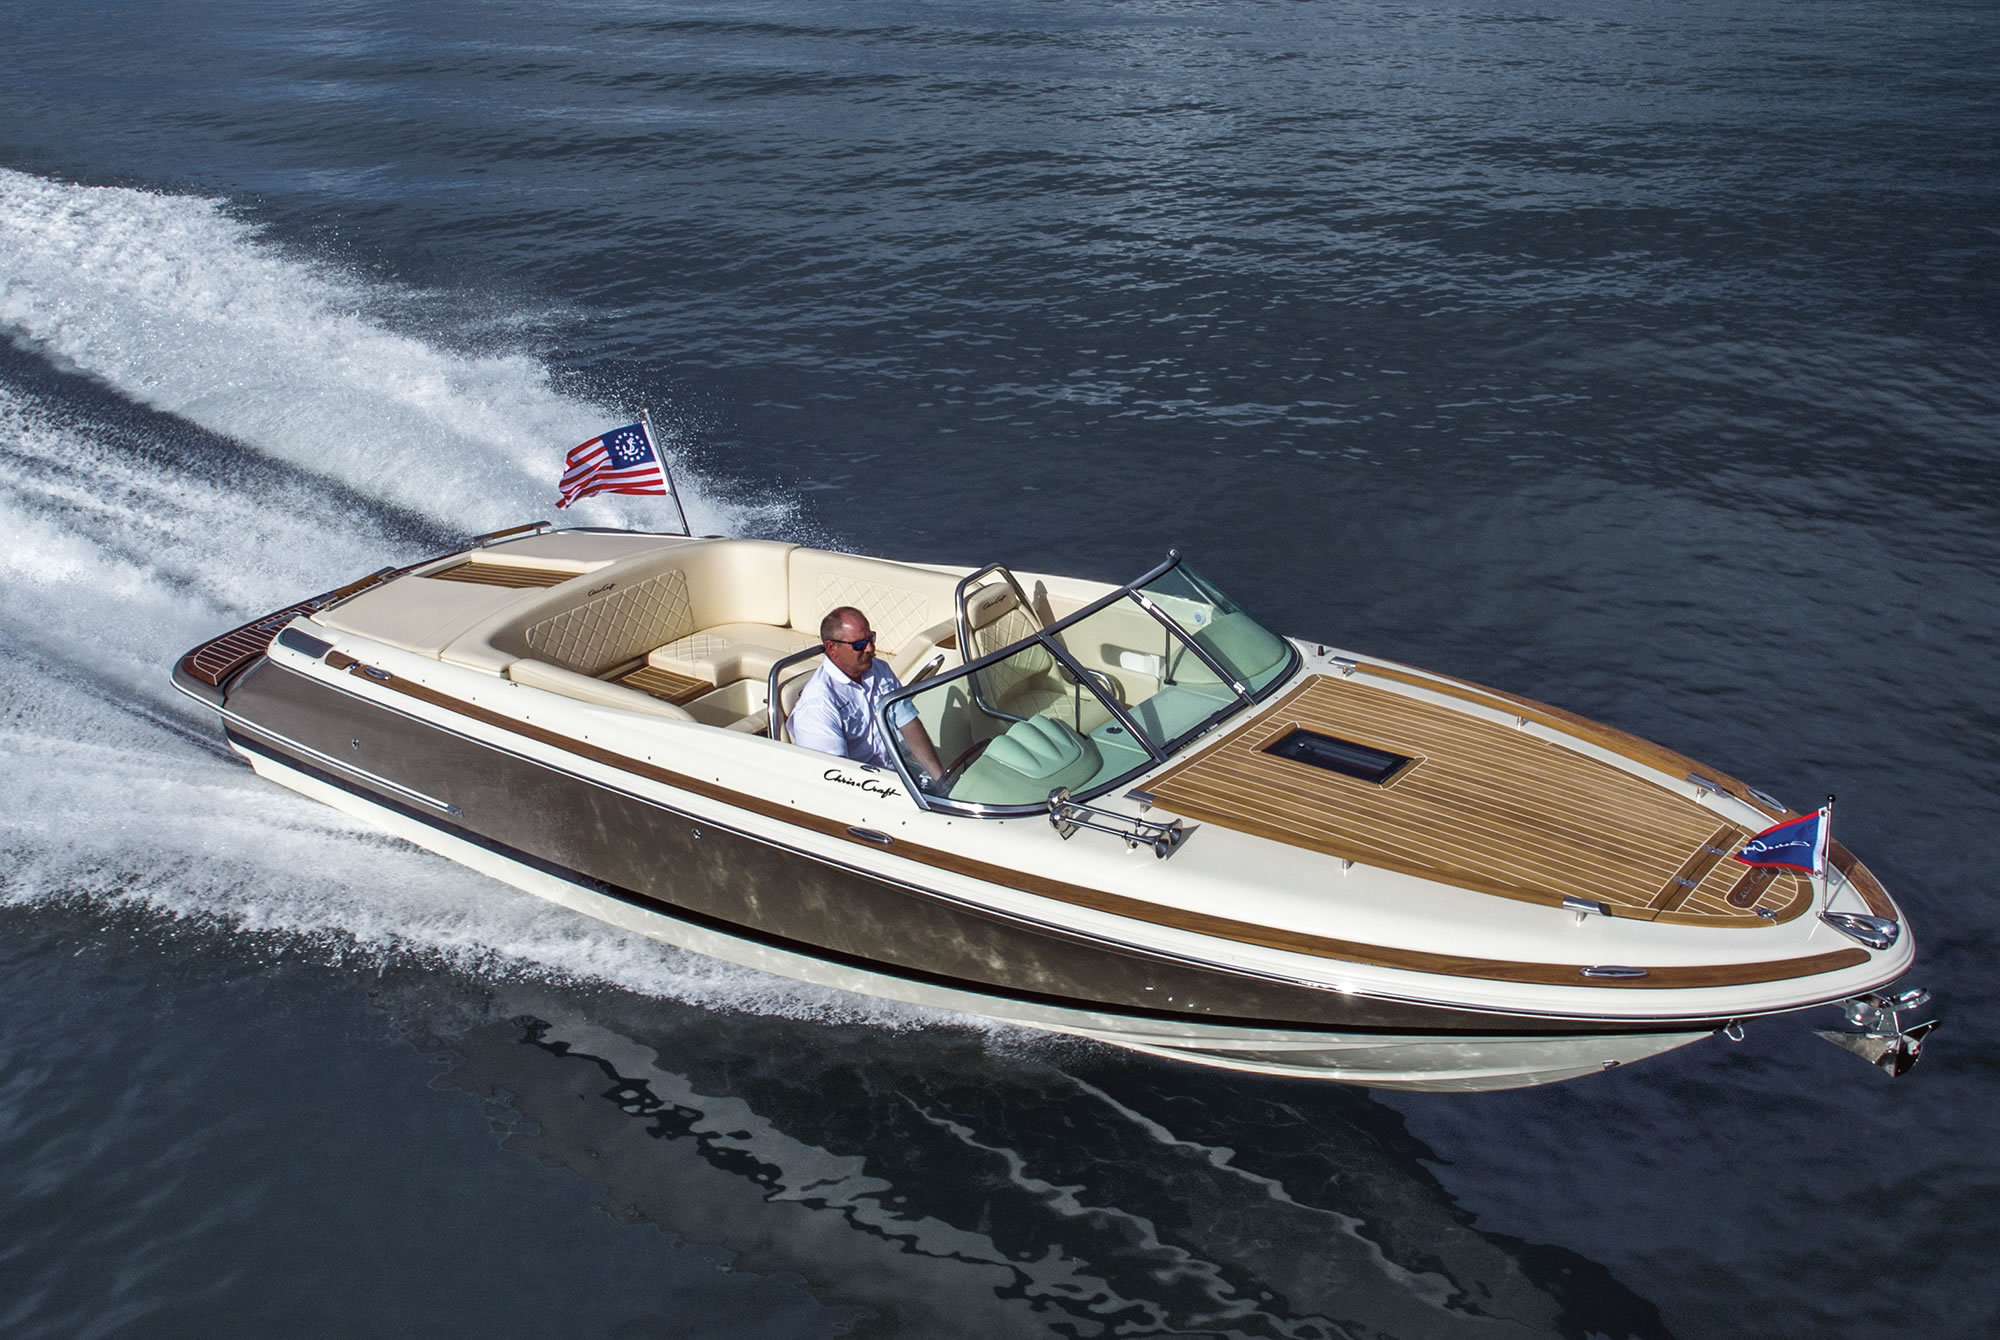 Chris Craft Specifications